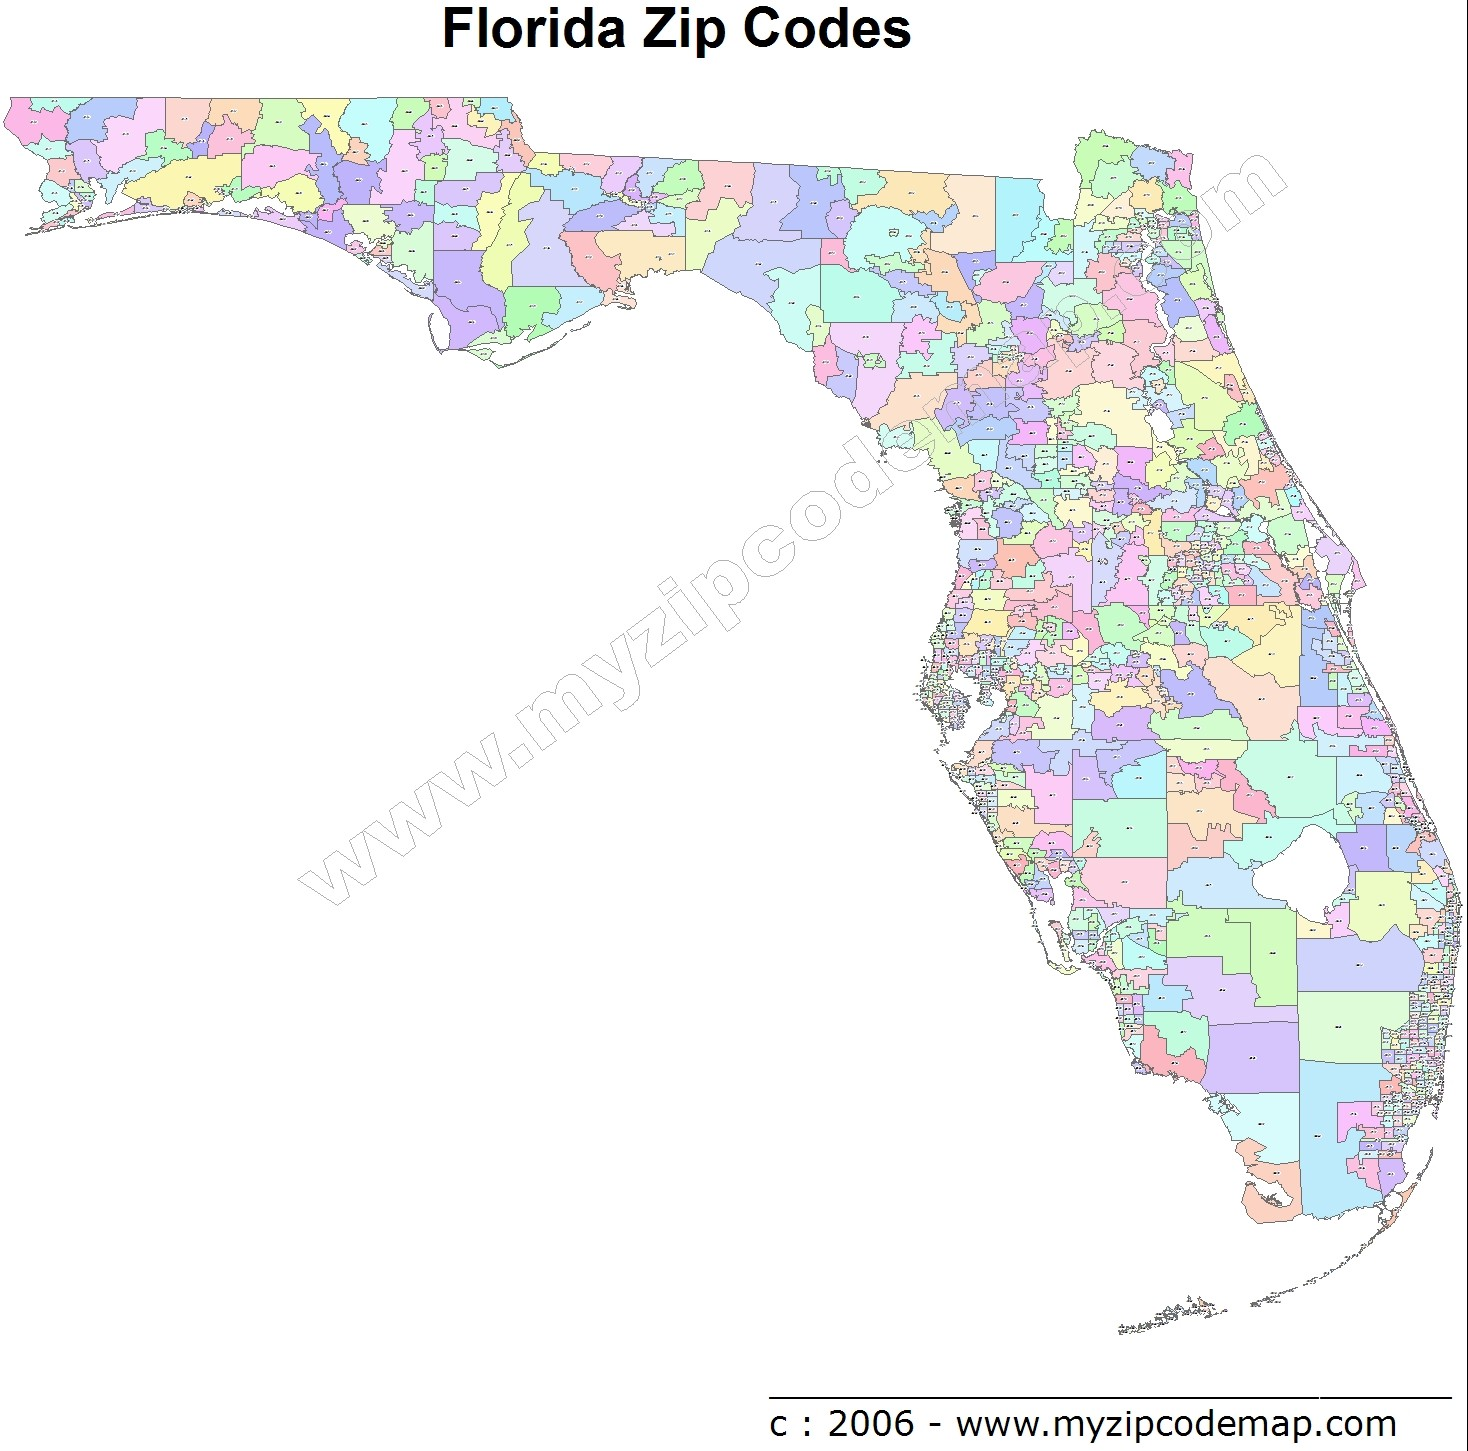 Florida Area Code Map.Florida Zip Code Maps Free Florida Zip Code Maps